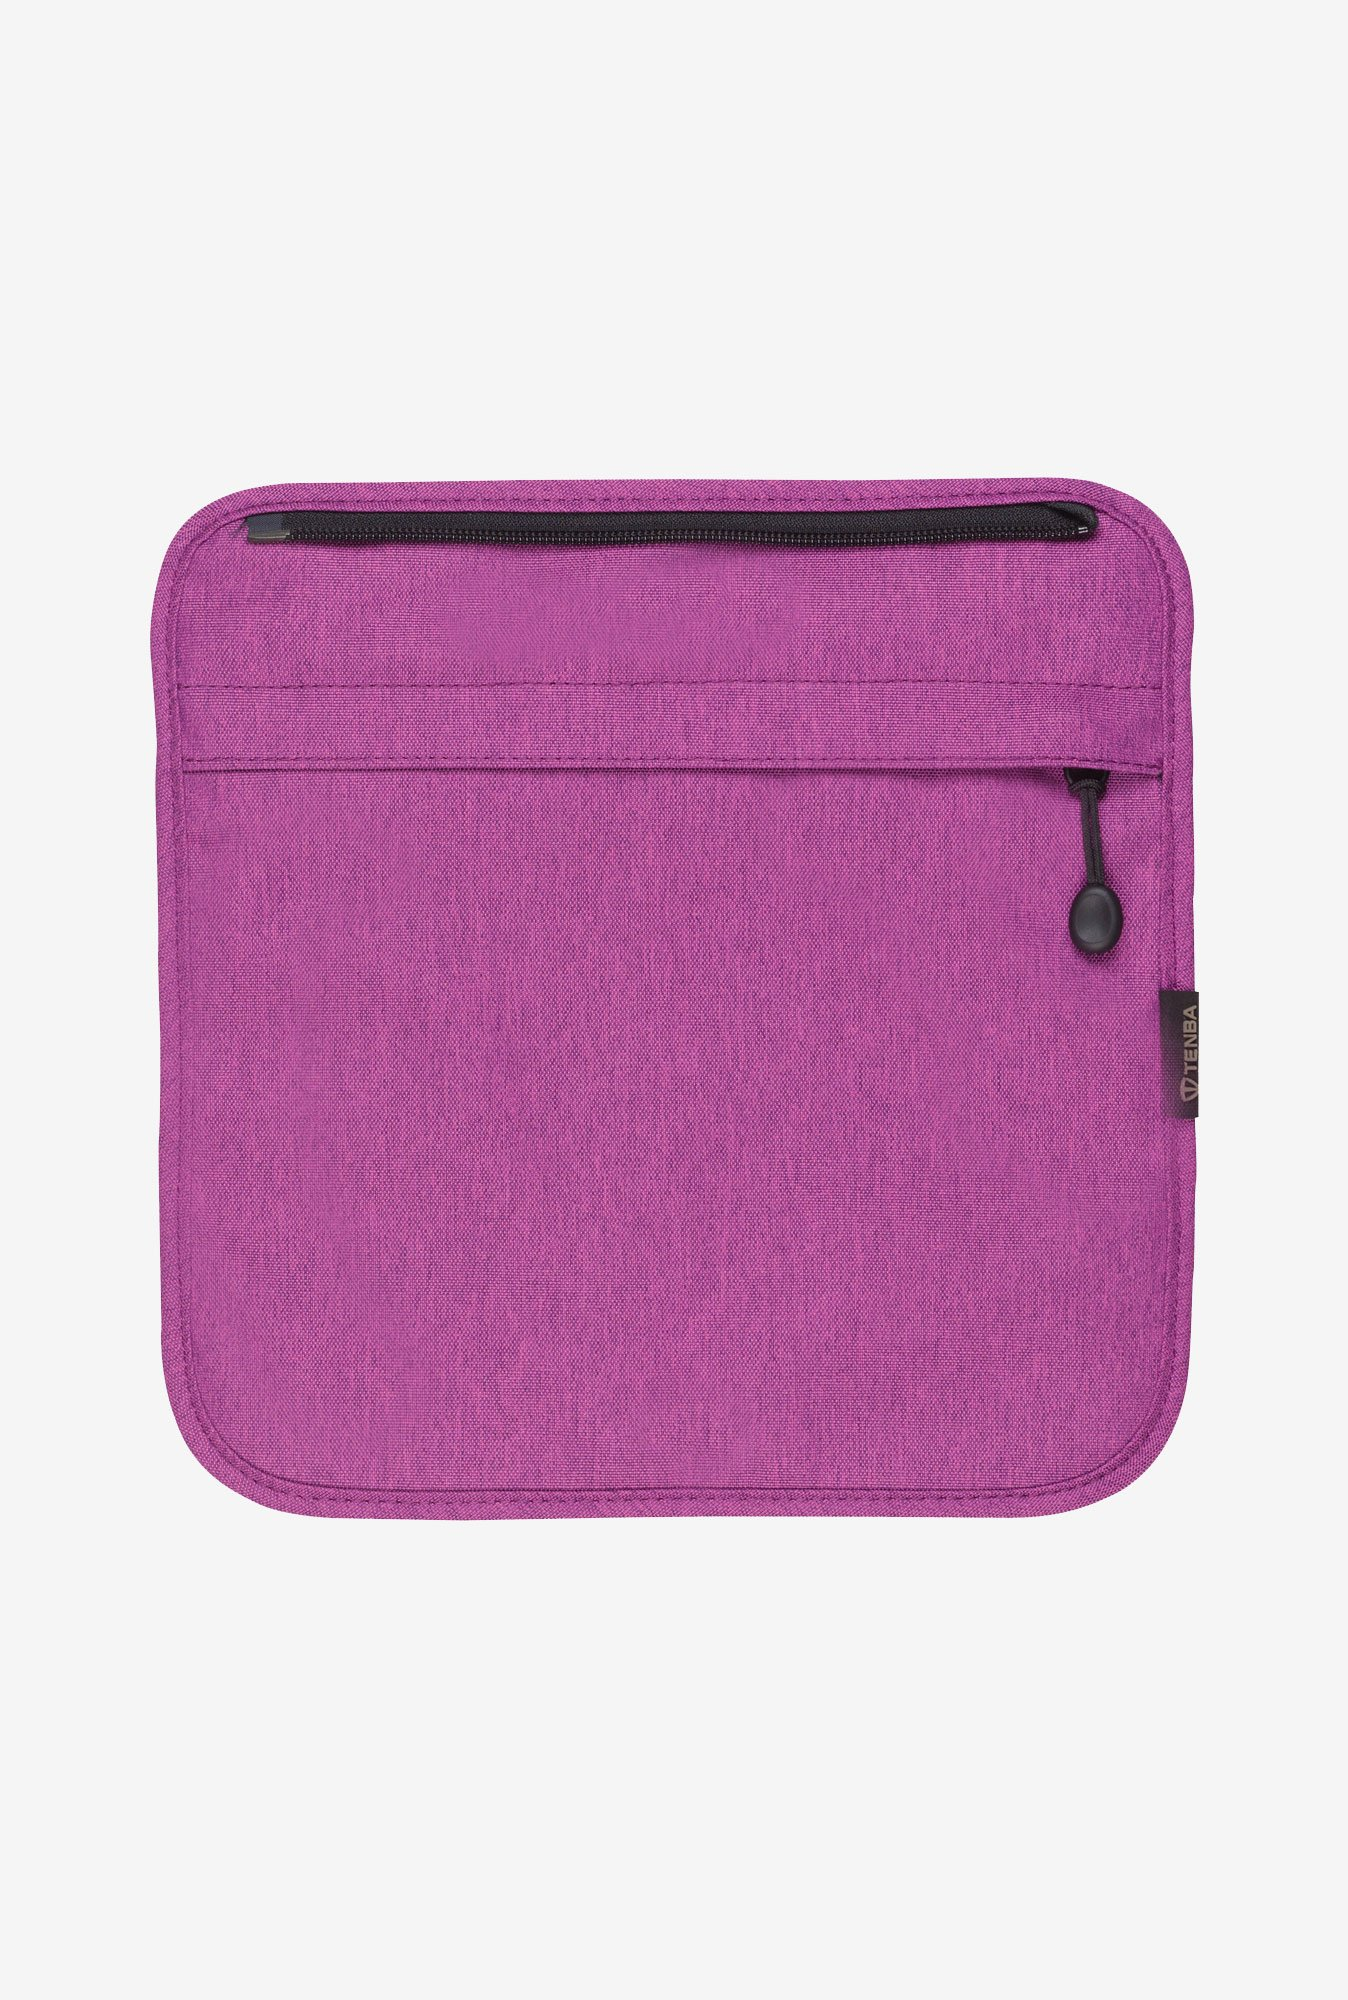 Tenba Switch Cover 7 (Pink Melange)